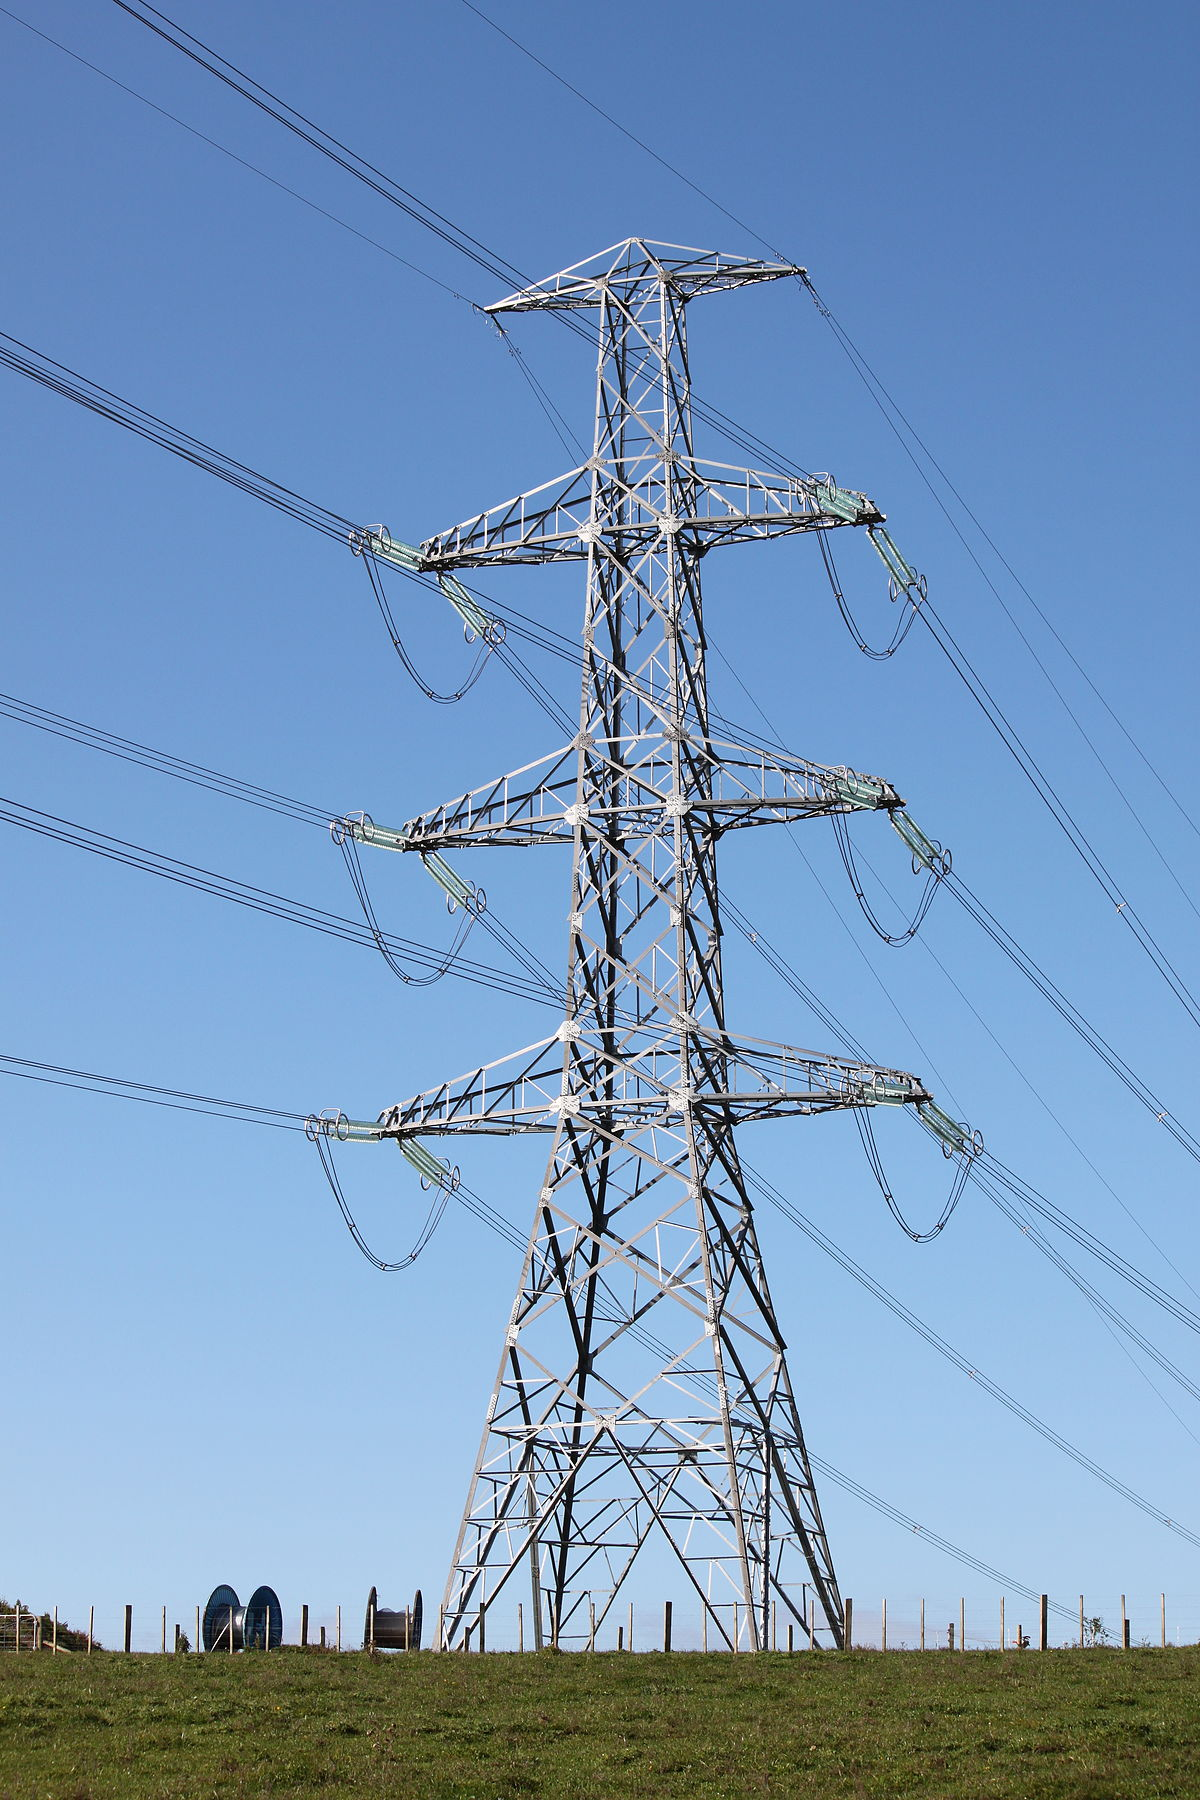 To The Left Is A Diagram For The Generation Of Electricity From A